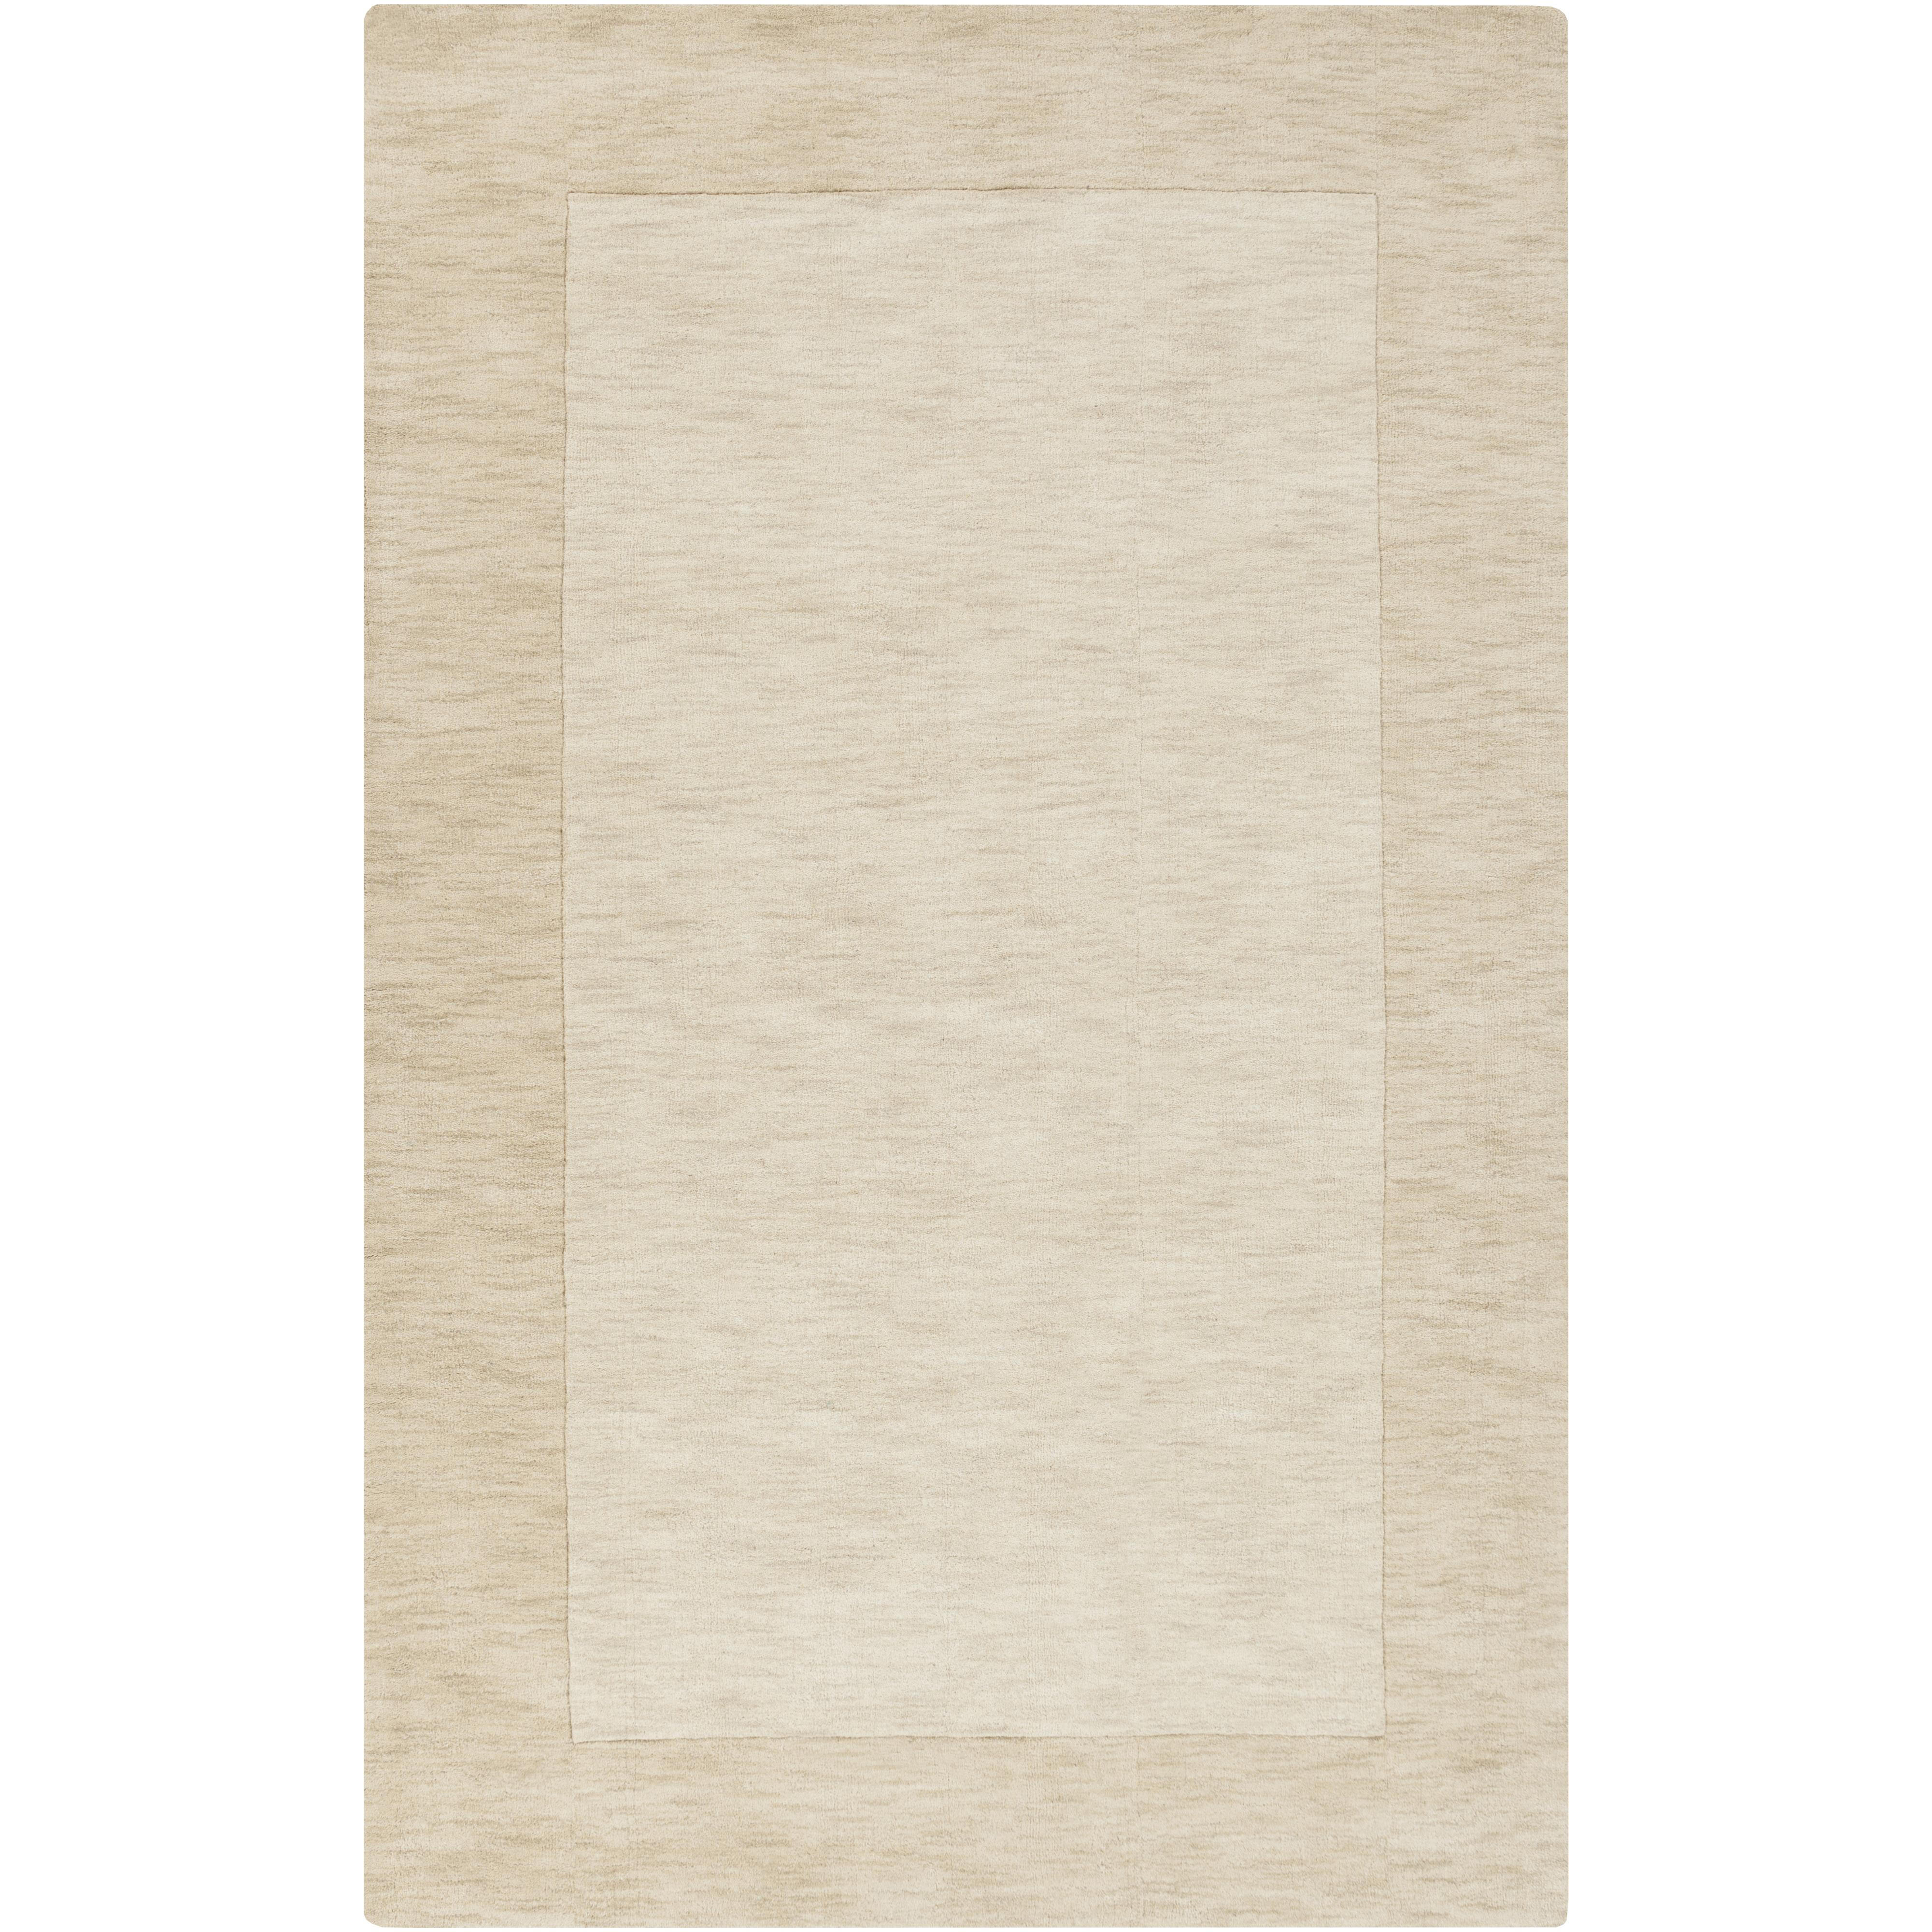 Surya Mystique 12' x 15' - Item Number: M5324-1215